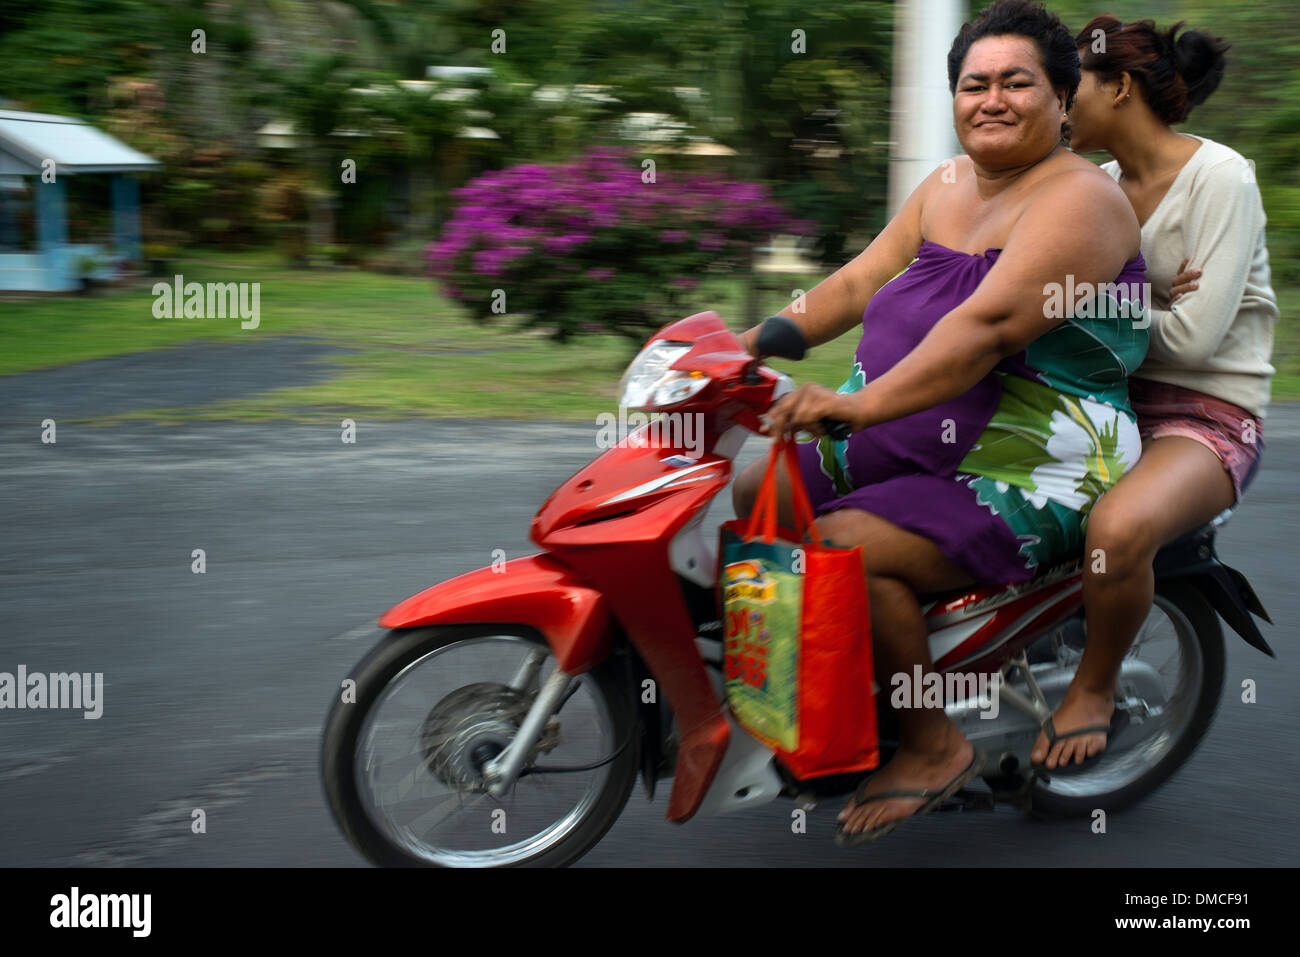 Rarotonga Island. Cook Island. Polynesia. South Pacific Ocean. Two obese people drive a motorcycle on a road on the island - Stock Image